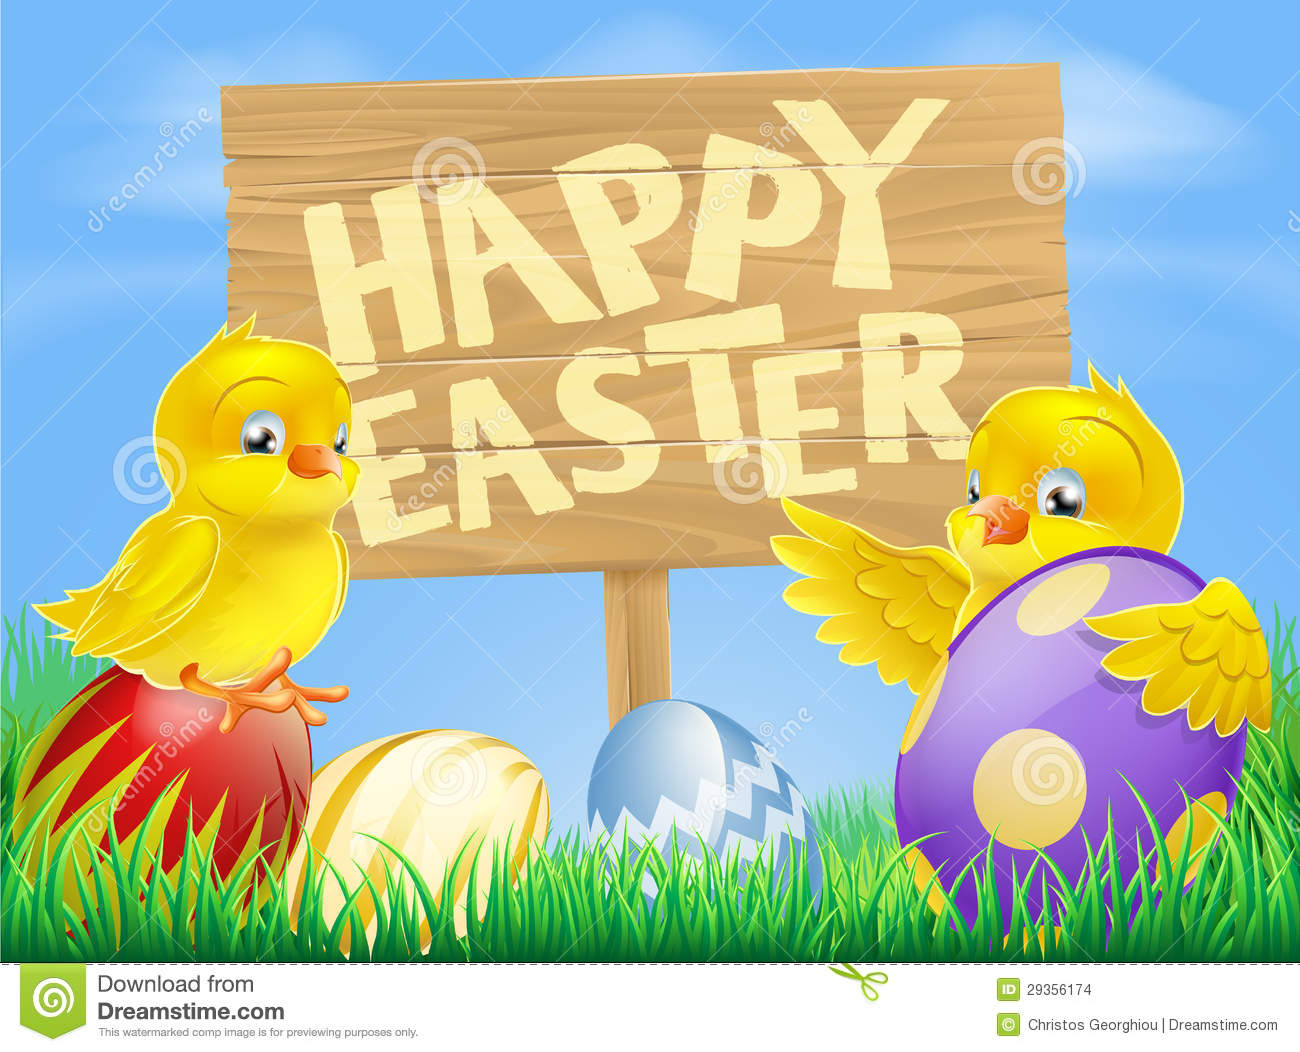 Cute Cartoon Bird Wallpapers Easter Birds And Eggs With Sign Stock Vector